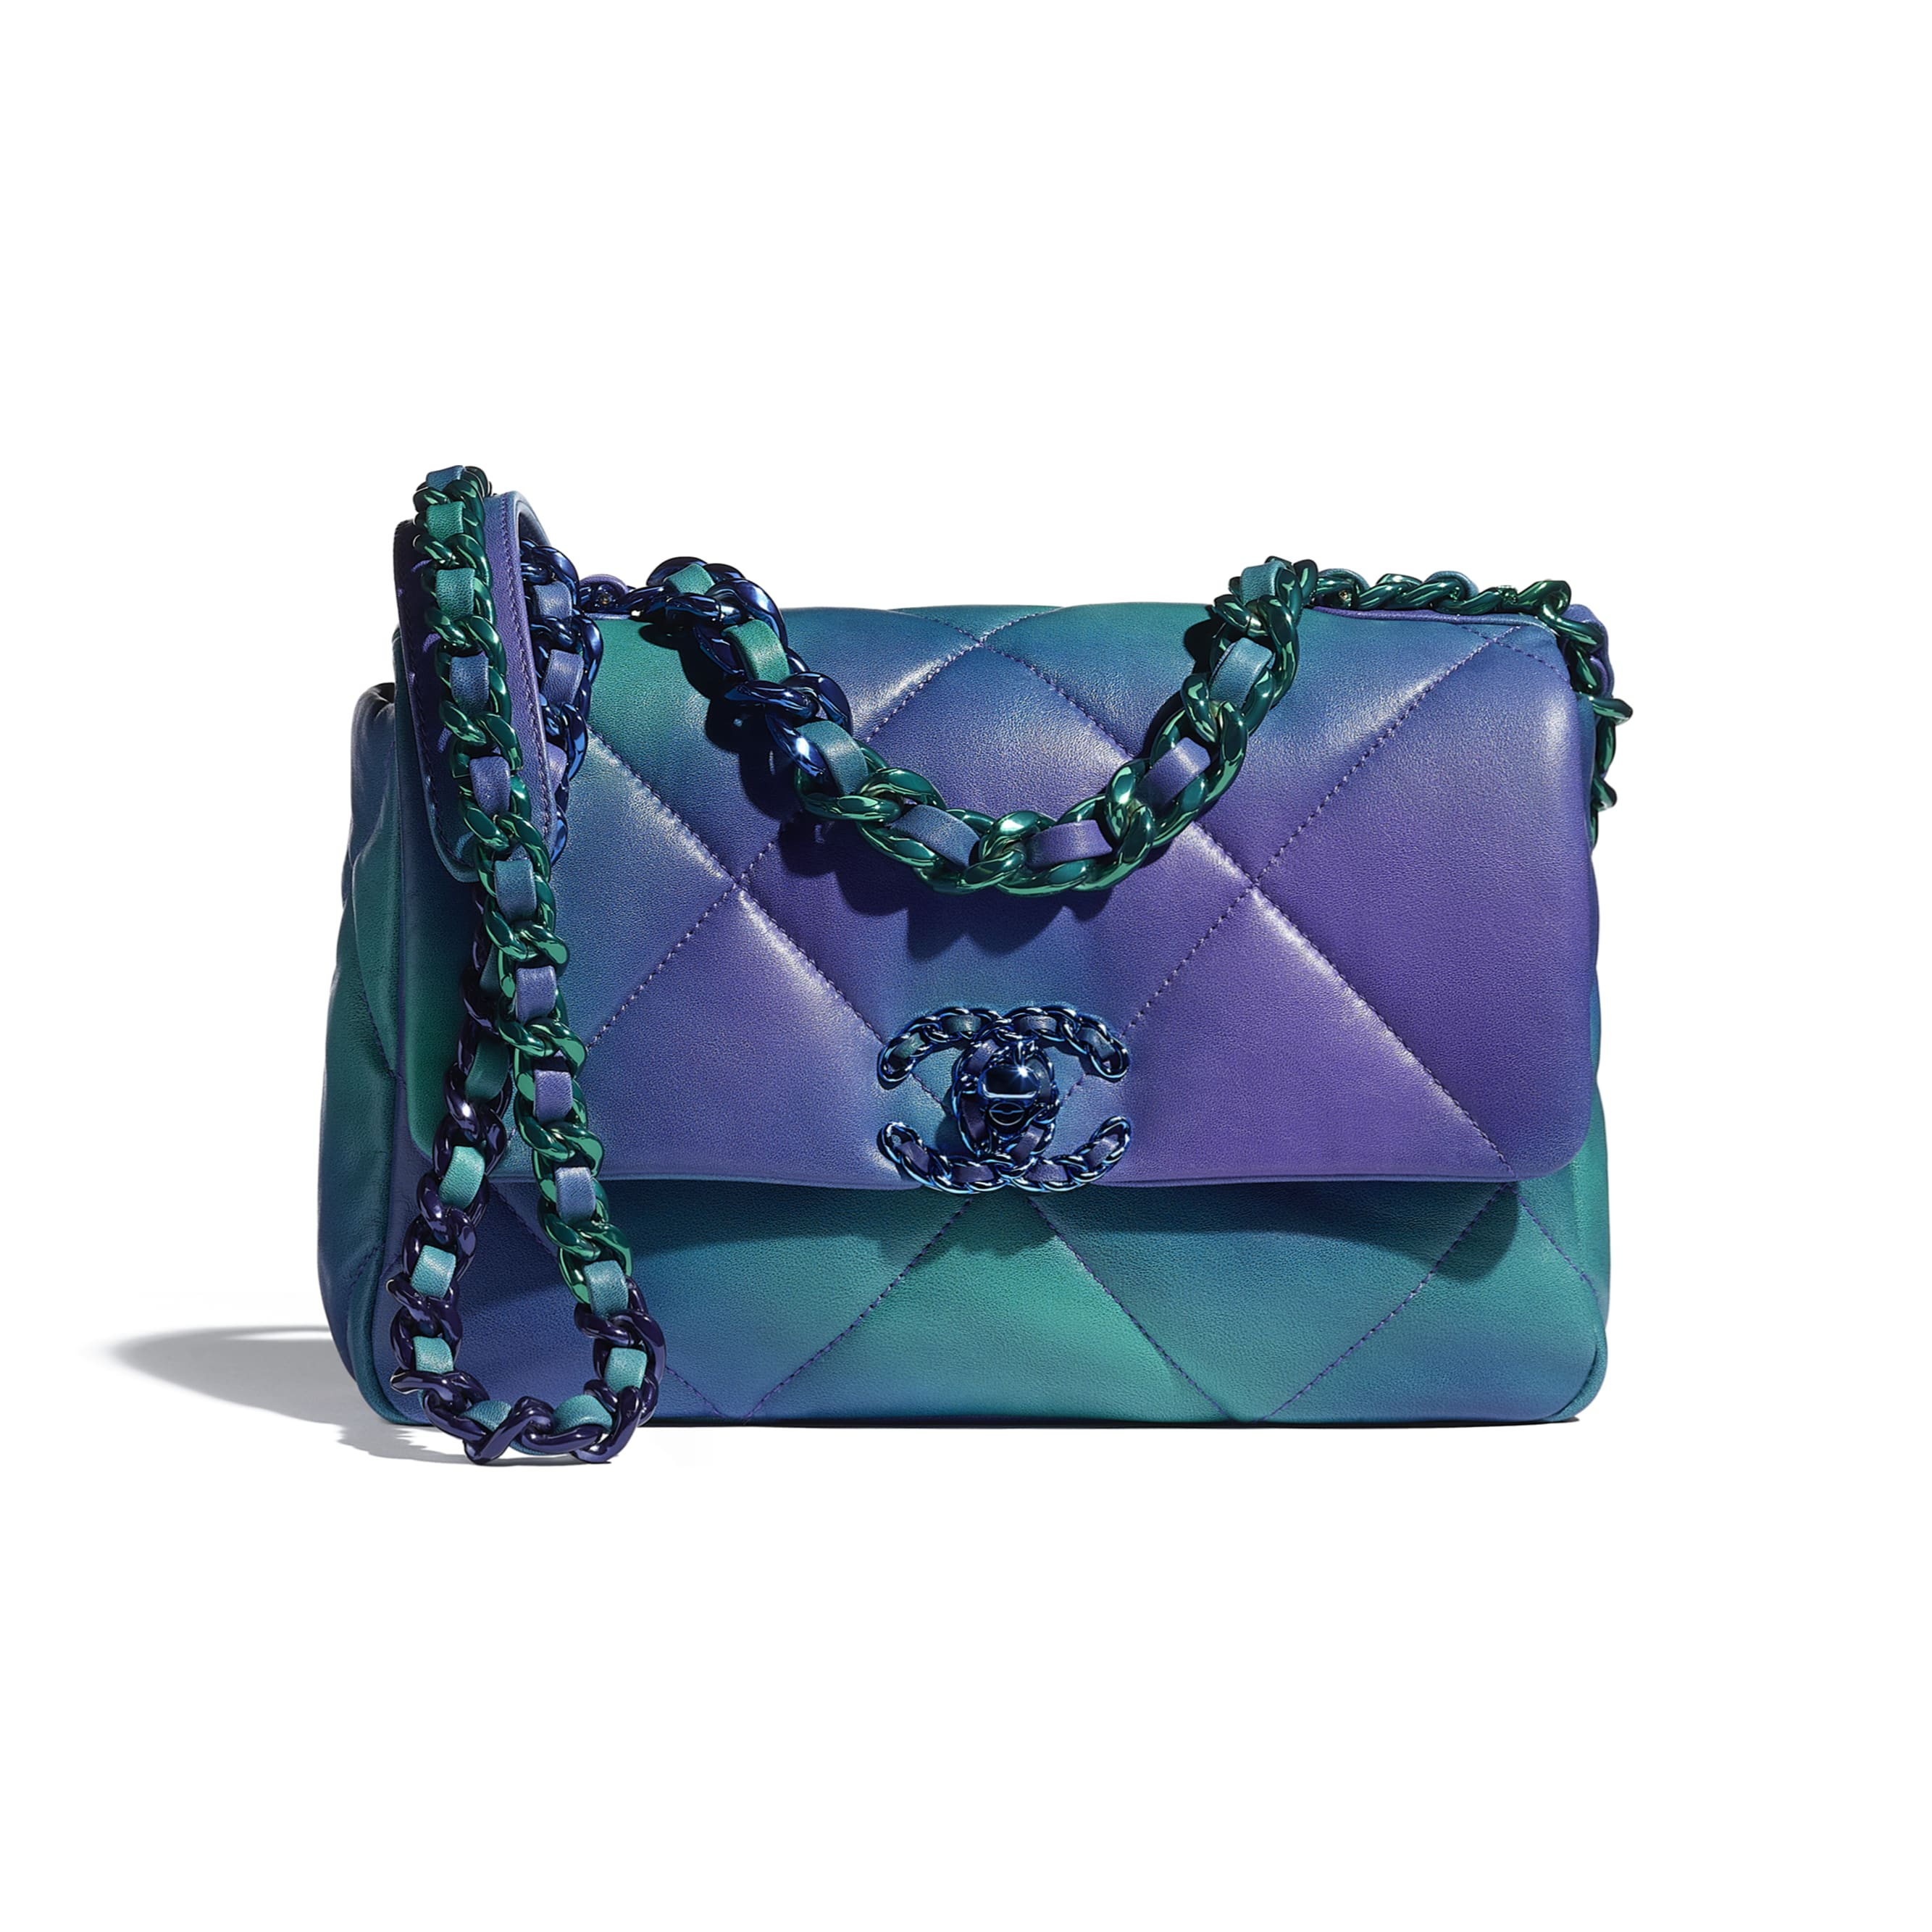 CHANEL 19 Flap Bag - Blue & Purple - Tie and Dye Calfskin & Lacquered Metal - CHANEL - Default view - see standard sized version